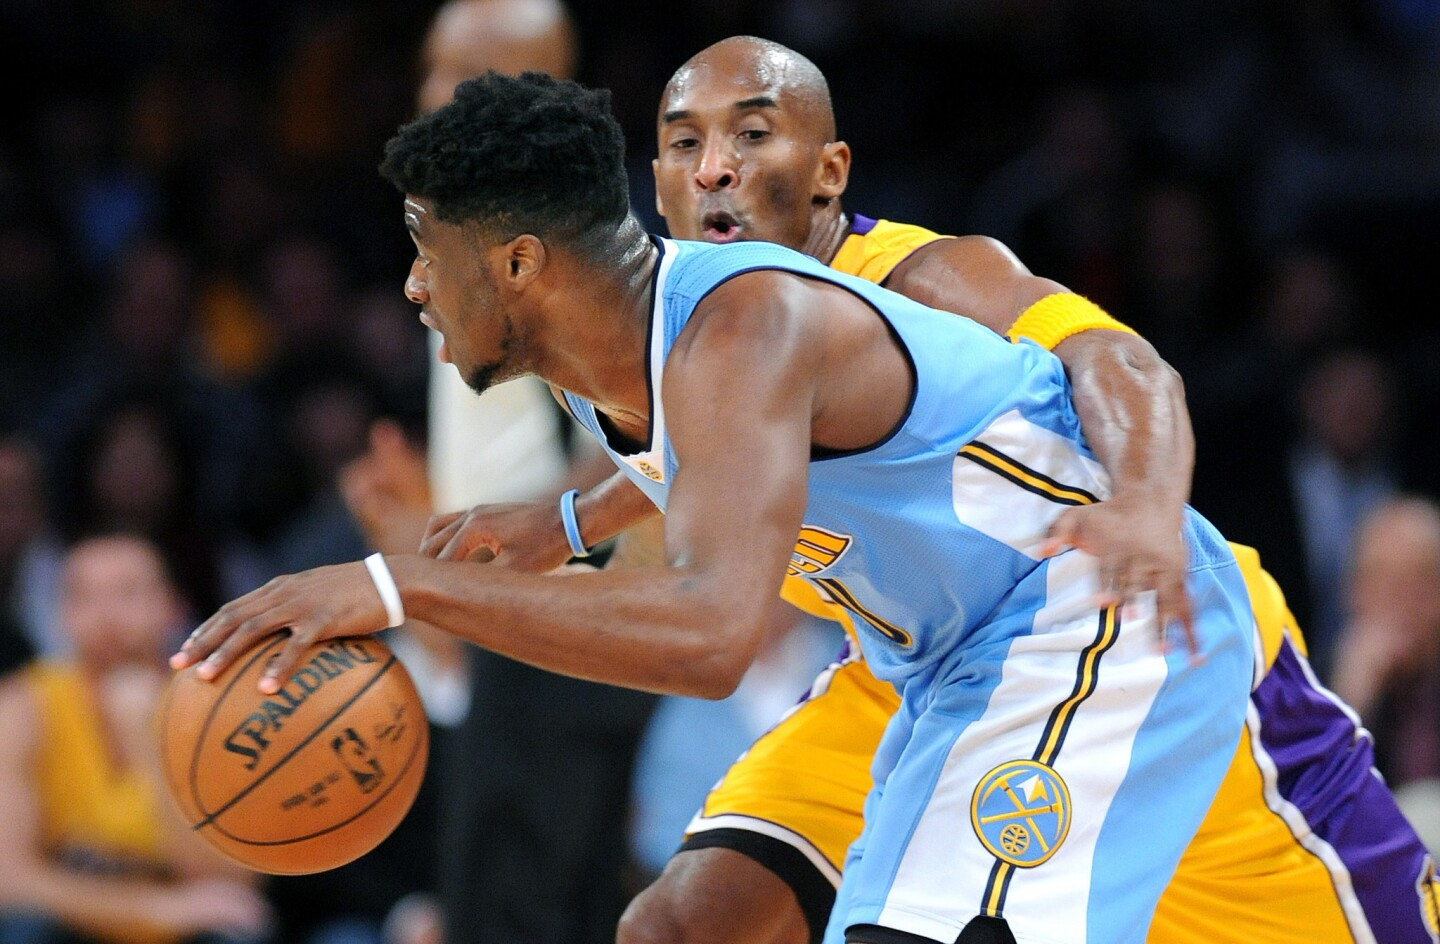 Kobe Bryant tries to steal the ball from Nuggets guard Emmanuel Mudiay at Staples Center on Nov. 3.